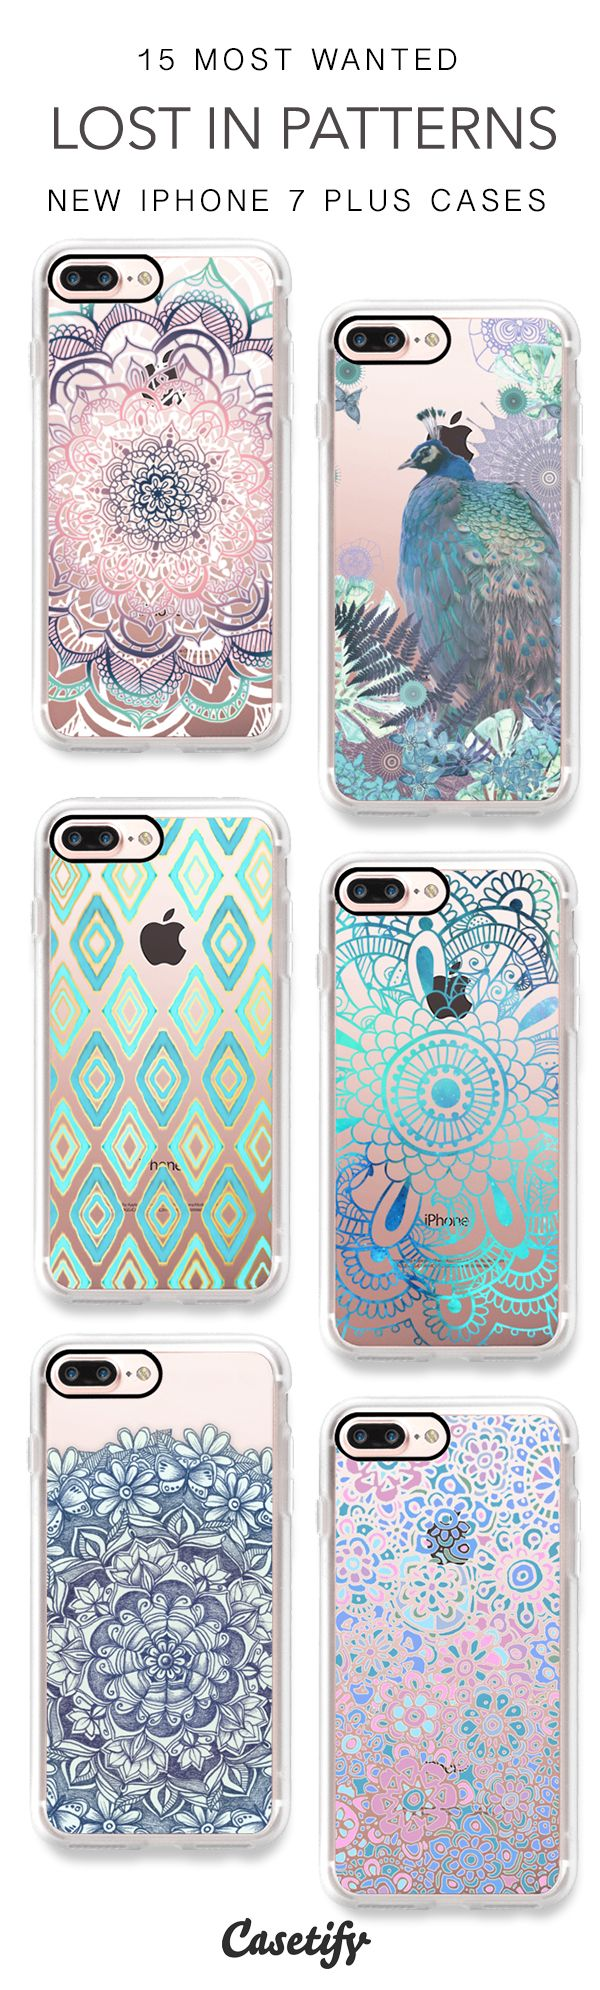 best phone cases images on Pinterest Phone cases Phone covers